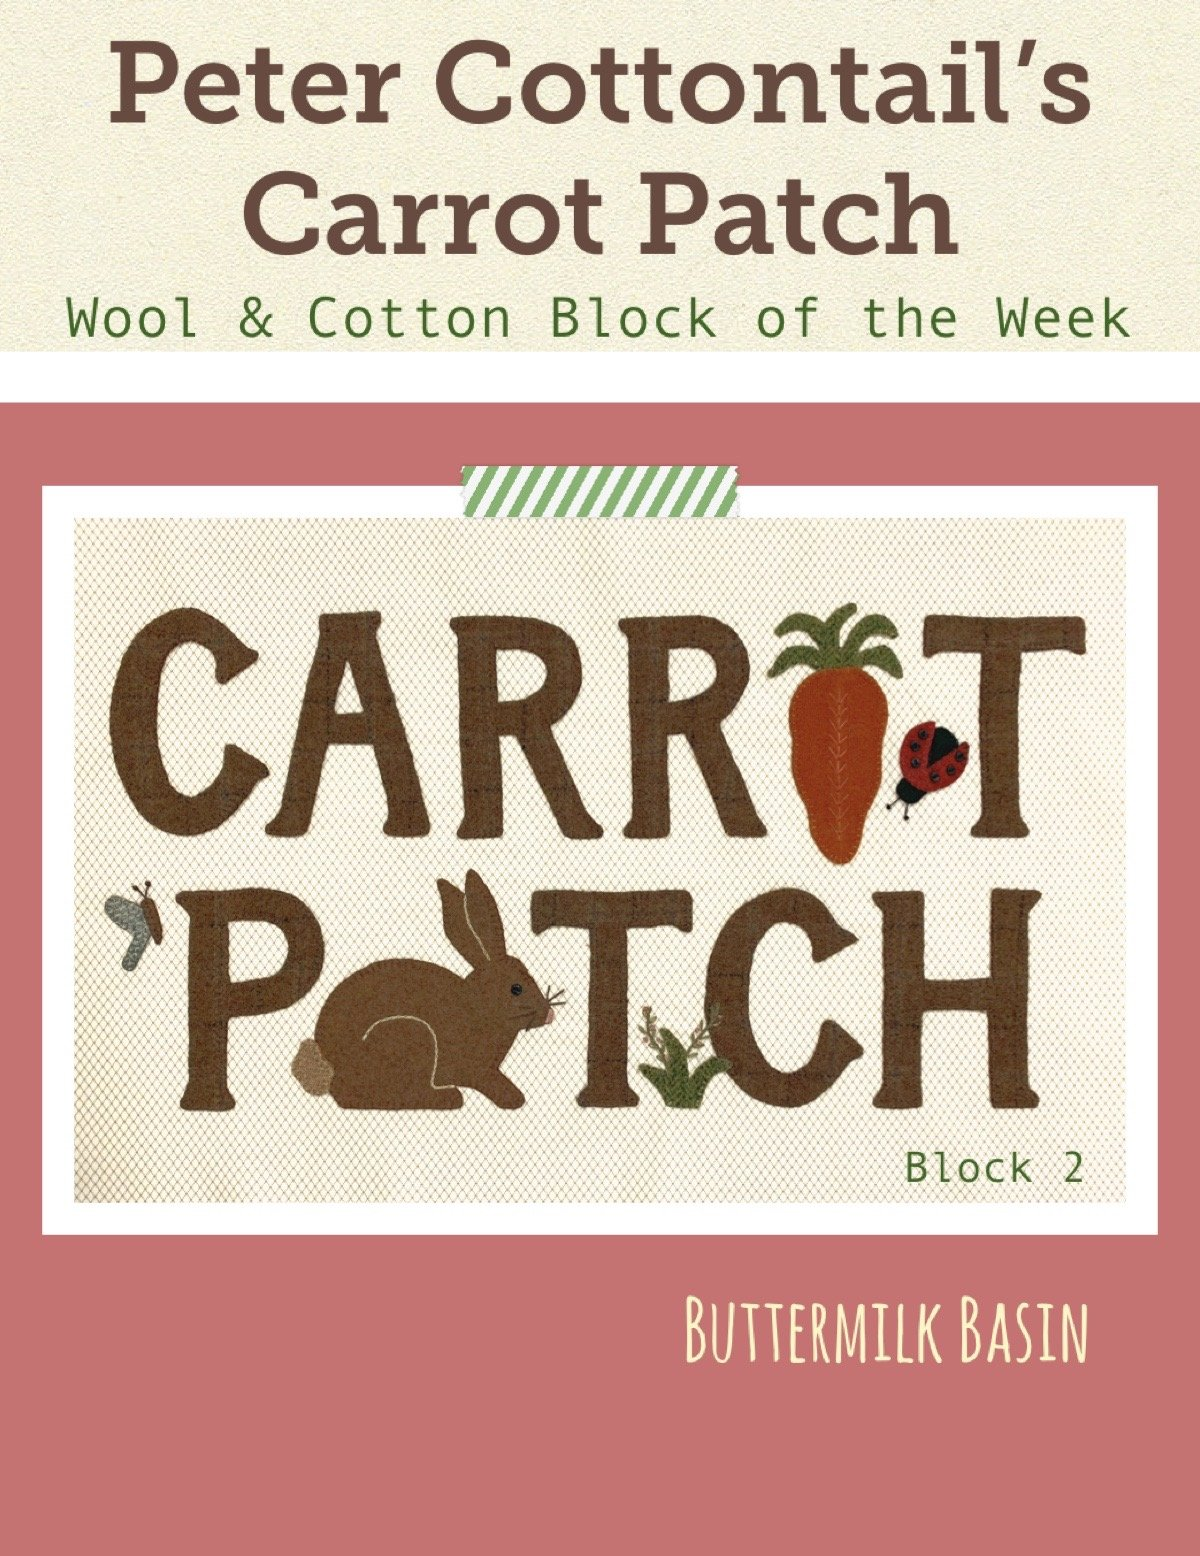 Peter Cottontail's Carrot Patch Block of the Week * Block #2 Kit & Pattern